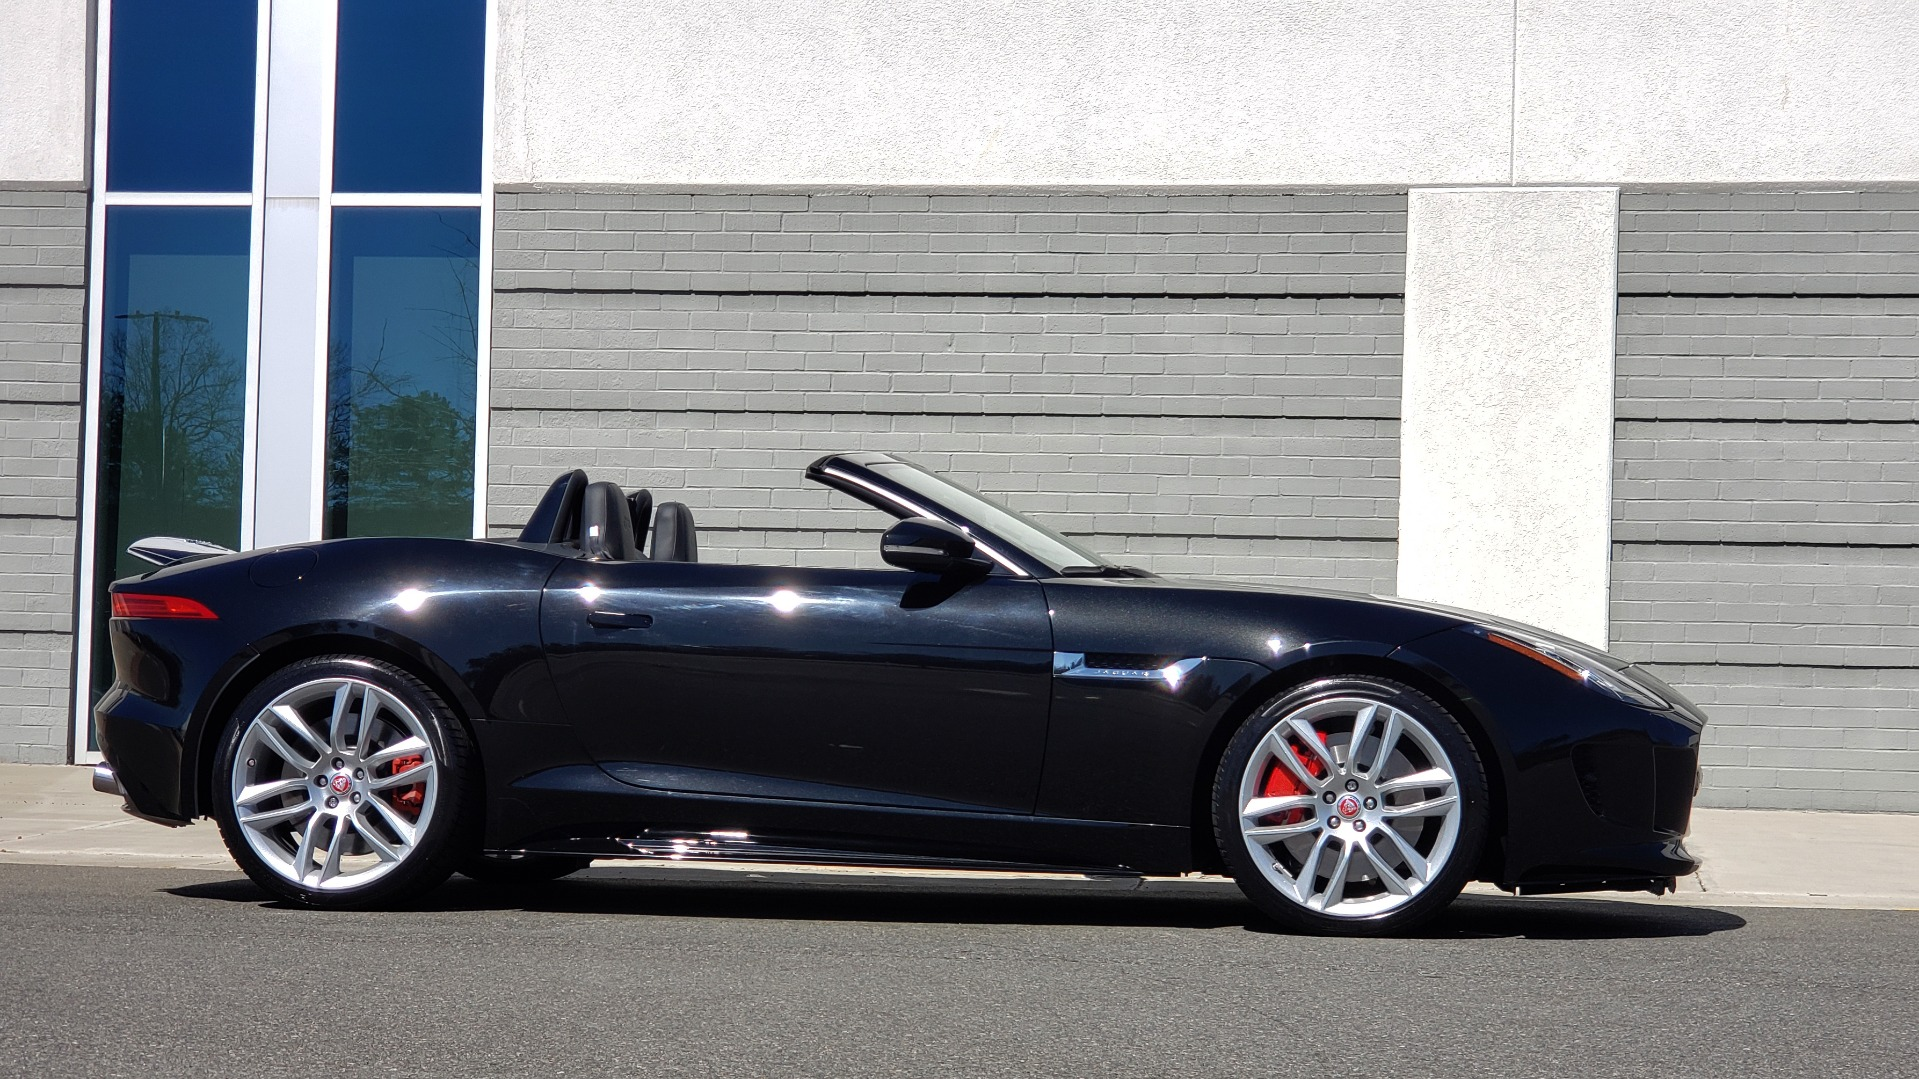 Used 2016 Jaguar F-TYPE R CONVERTIBLE / SC 5.0L 550HP / VISION PACK 3 / BSM / REARVIEW for sale $63,000 at Formula Imports in Charlotte NC 28227 11